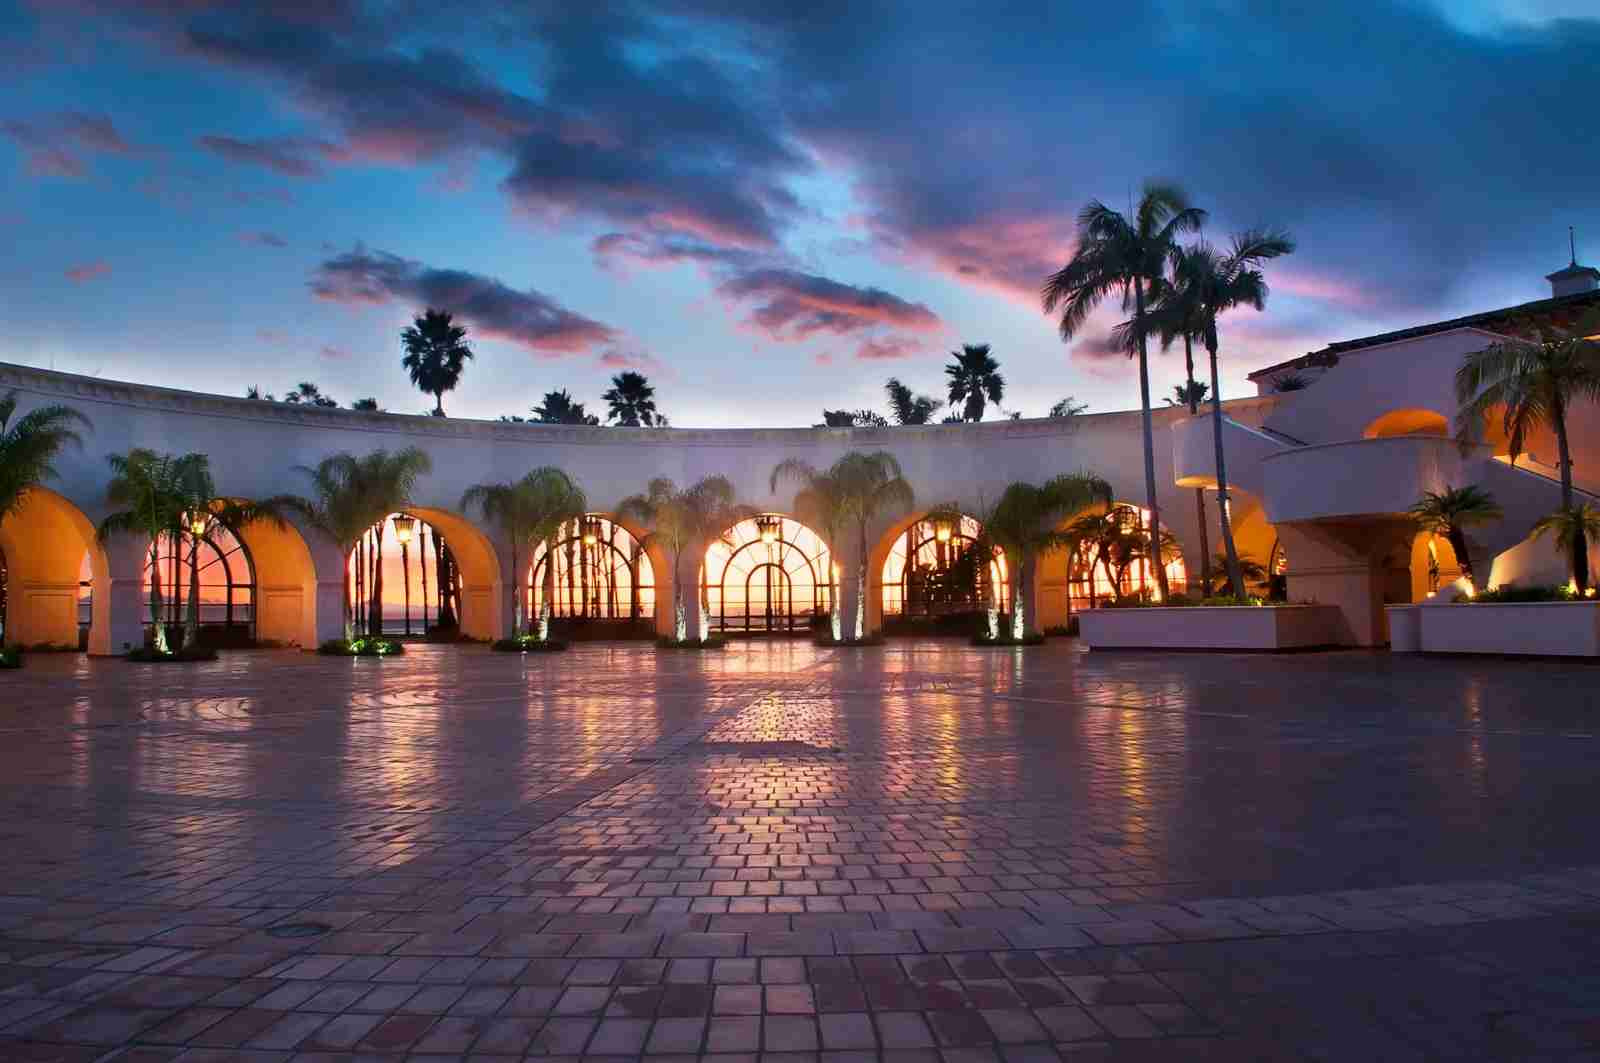 The Hilton Santa Barbara Beach Resort. (Photo courtesy of Hilton)